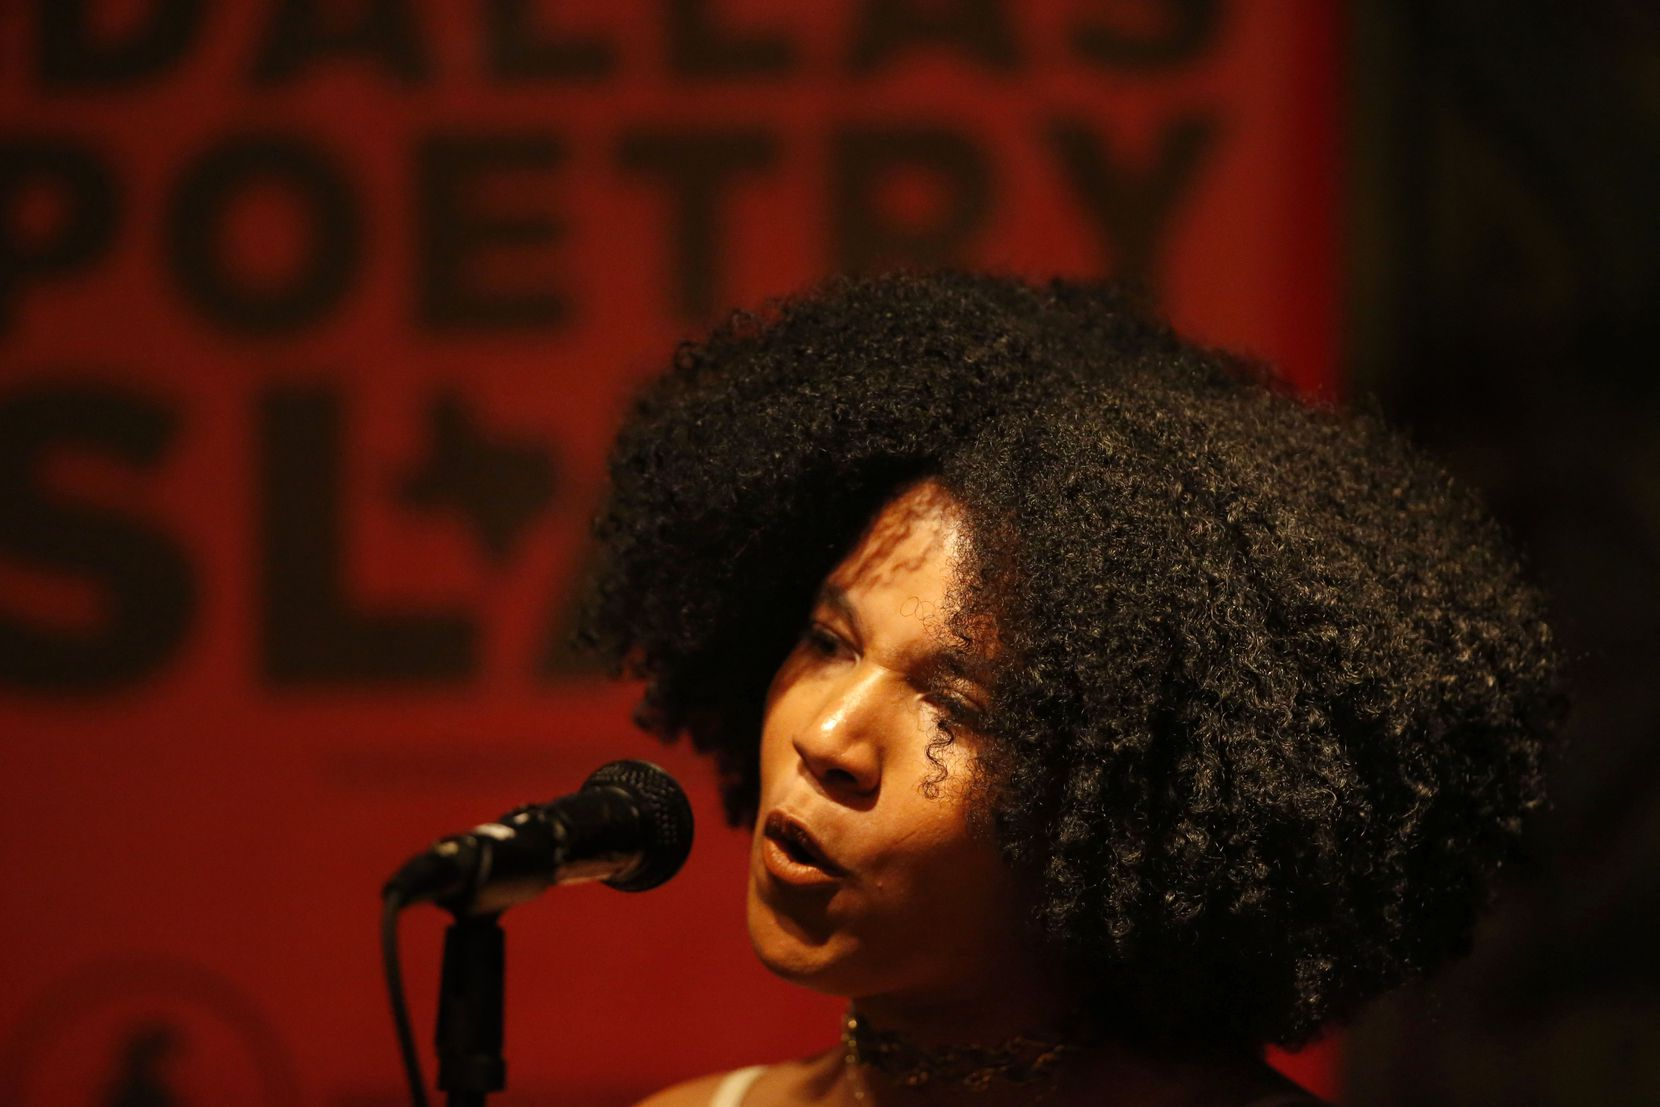 Melania-Luisa Marte performed during an open mic poetry night organized by the Dallas Poetry Slam at Checkered Past Winery and Wine Pub in Dallas on Sept. 25, 2018. Many local poets say they've missed performing in front of a crowd during the pandemic.